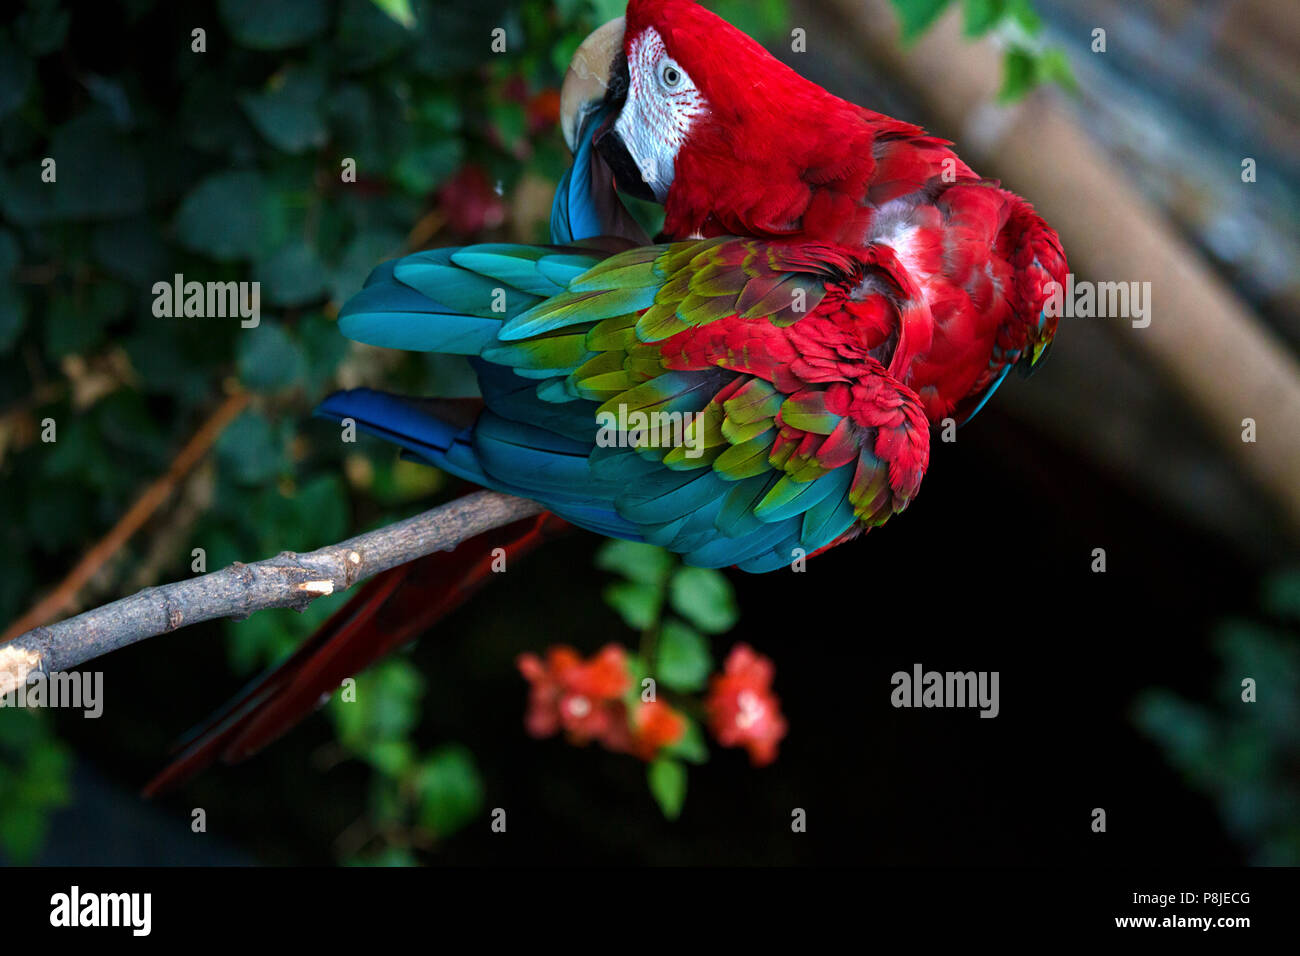 A green-winged parrot sits on a branch preening himself. The bird lives in the aviary of a zoo. - Stock Image